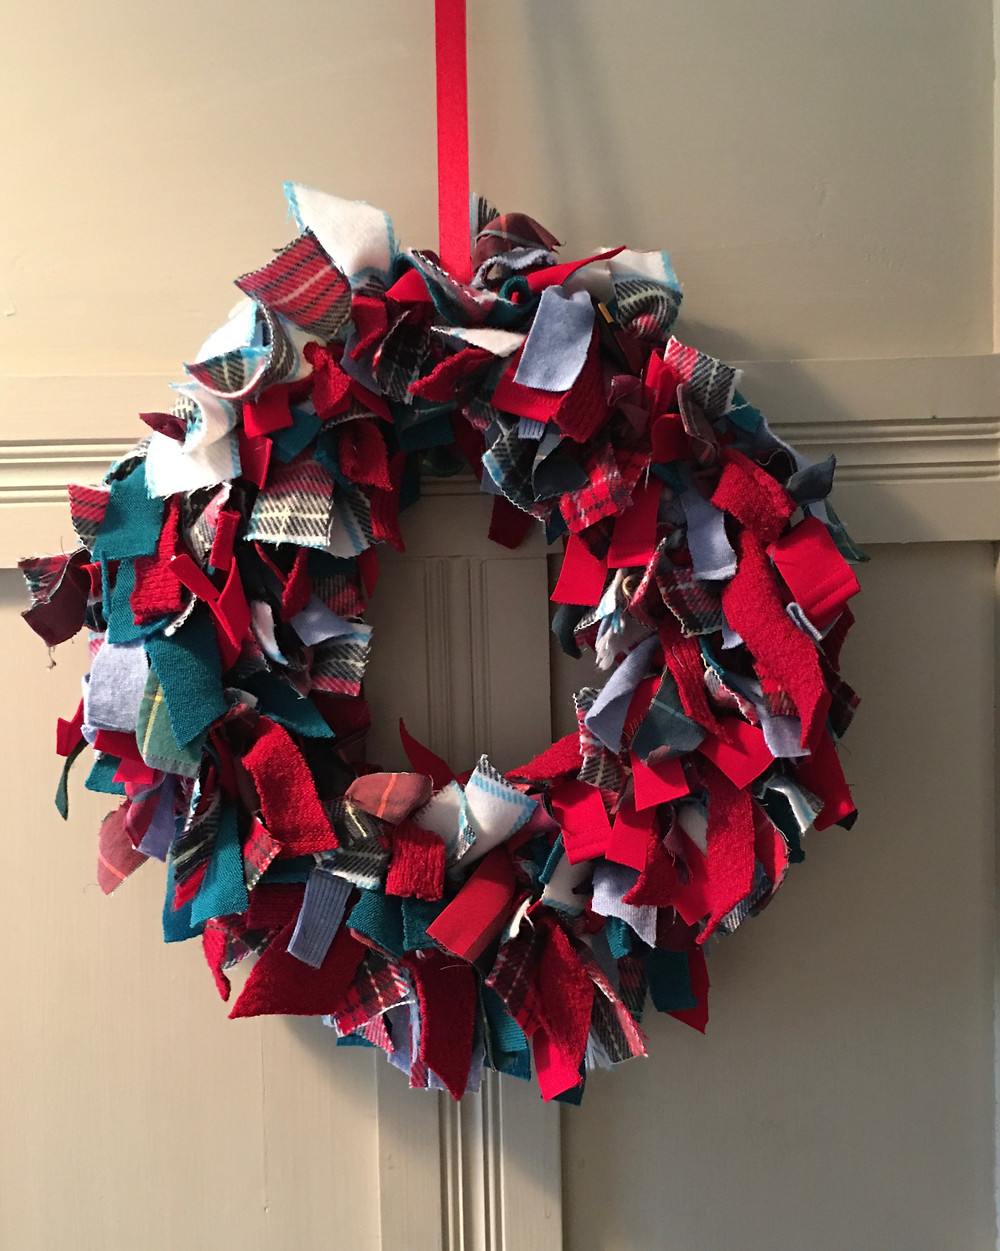 A wreath made by The Creative Accountant